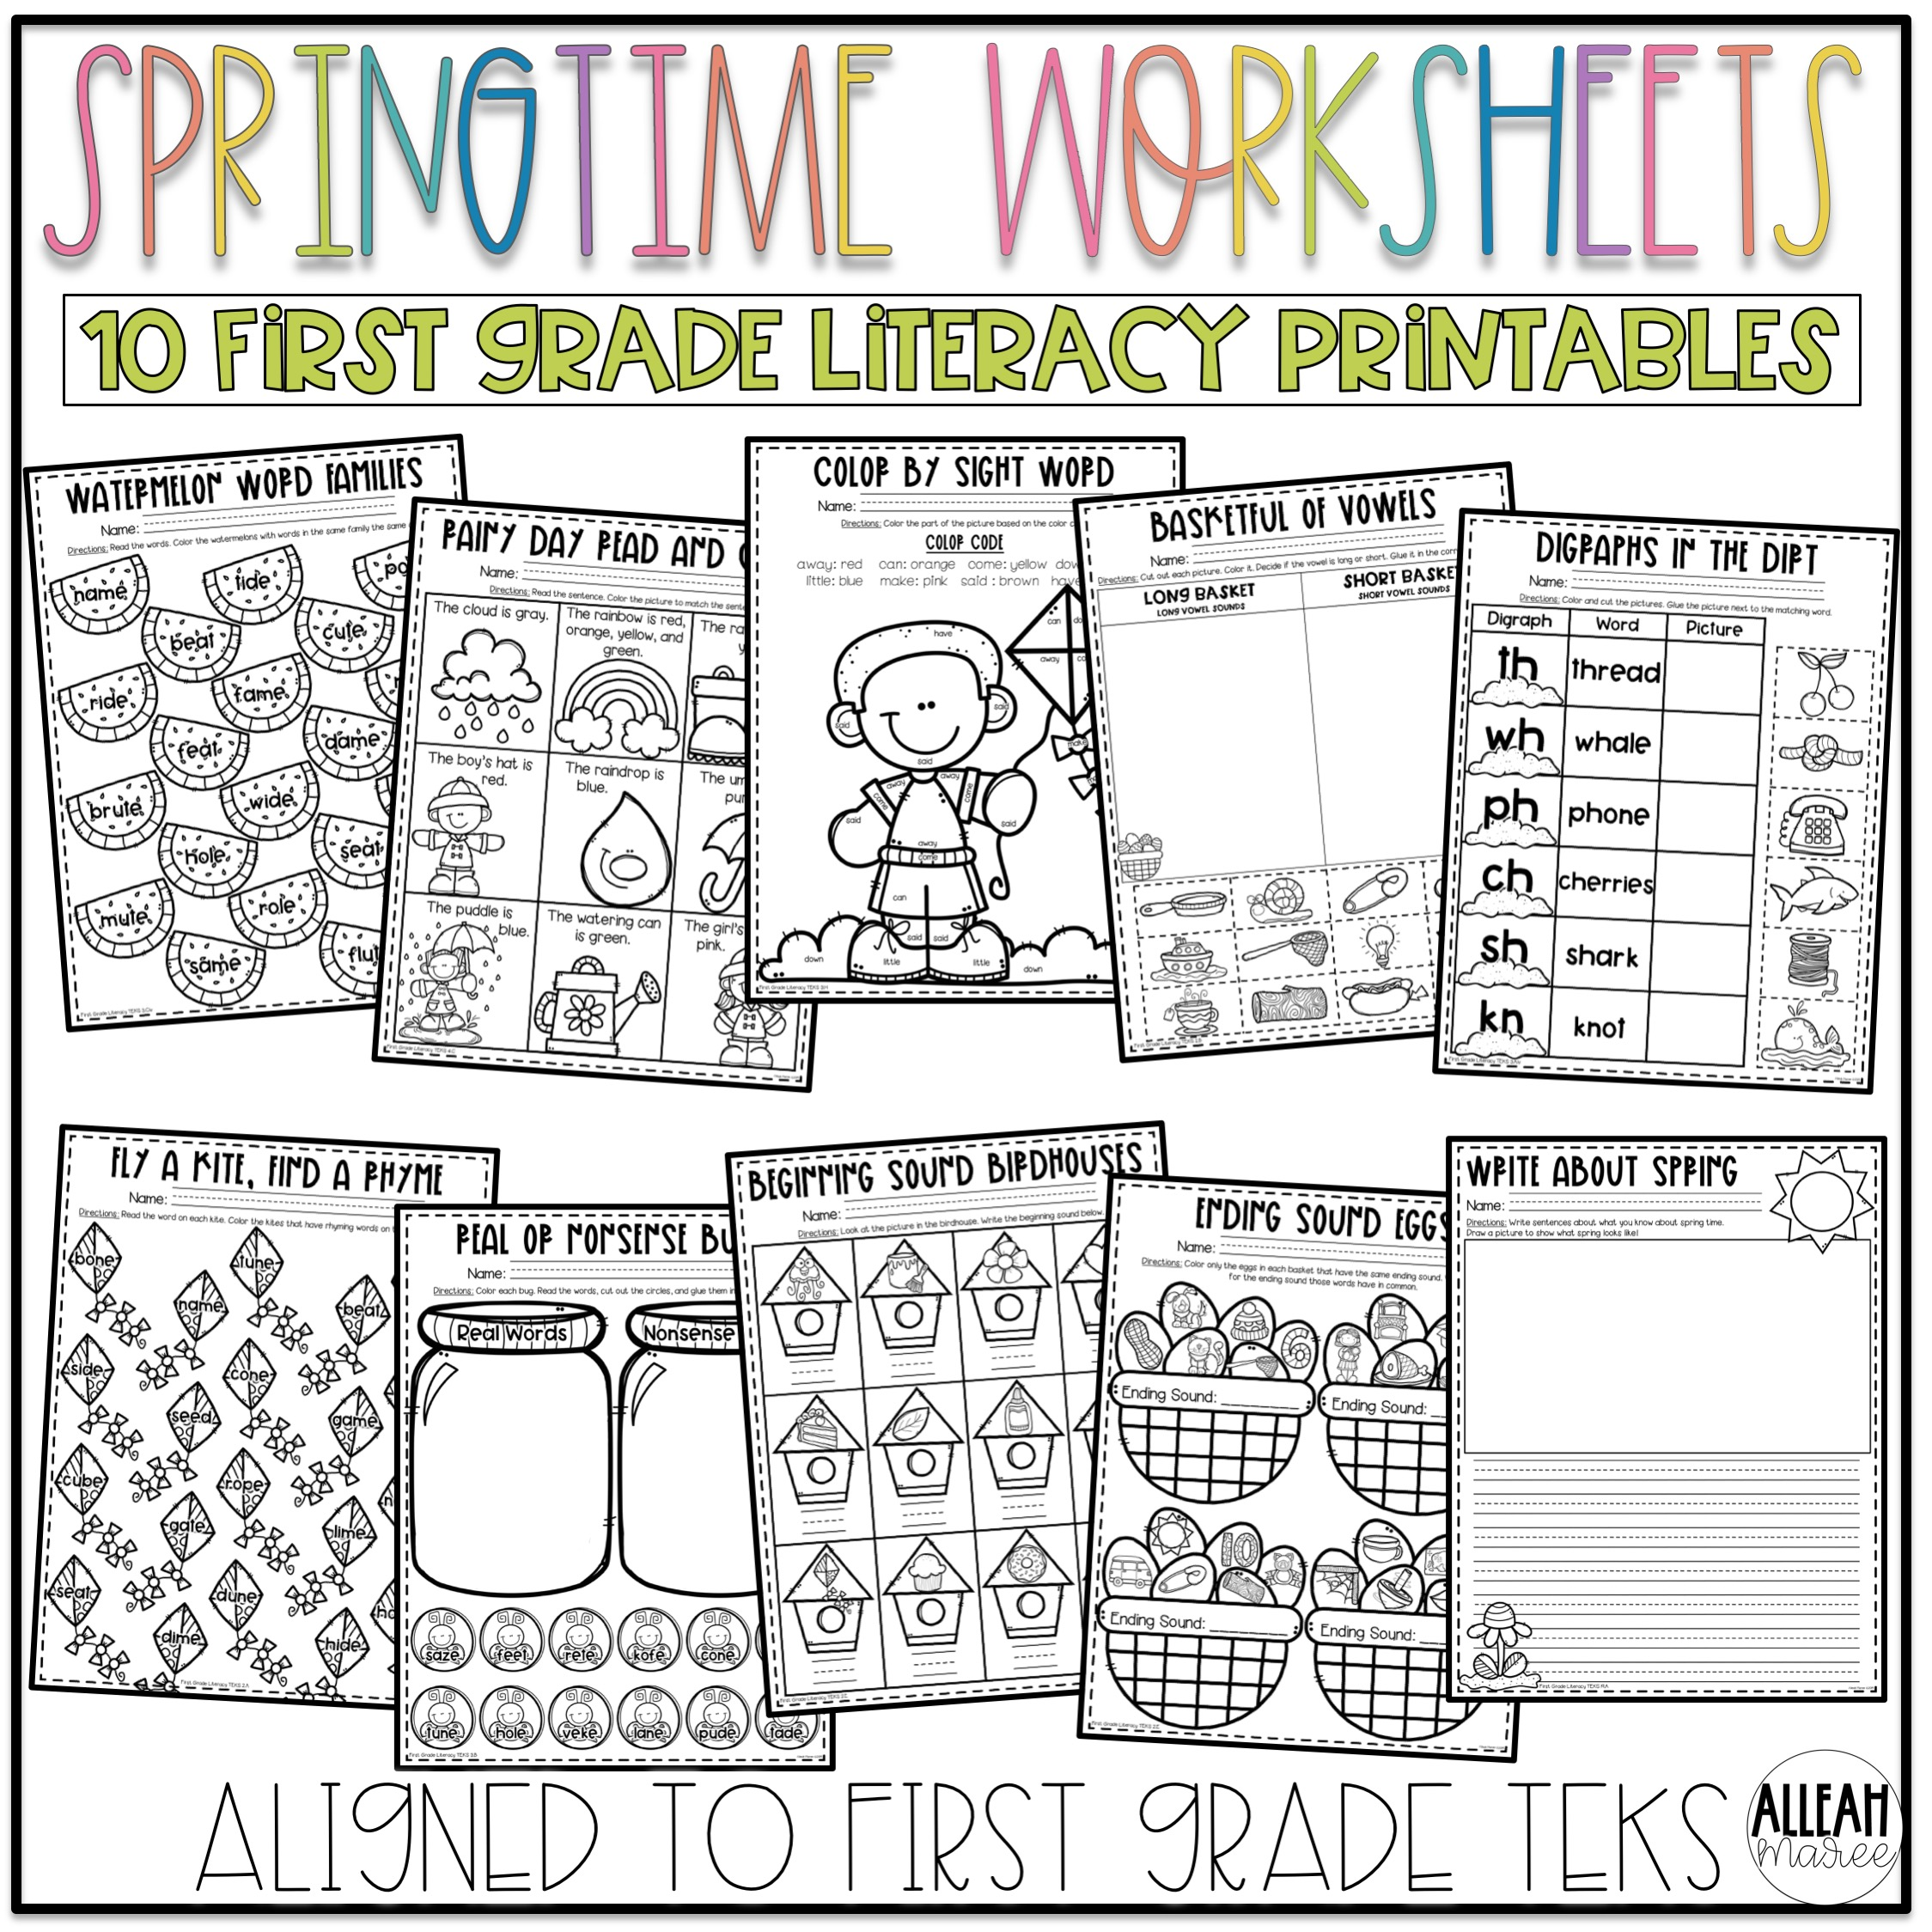 Springtime Worksheets for First Grade: Spring Literacy and Math Printables  — Alleah Maree [ 1000 x 1000 Pixel ]